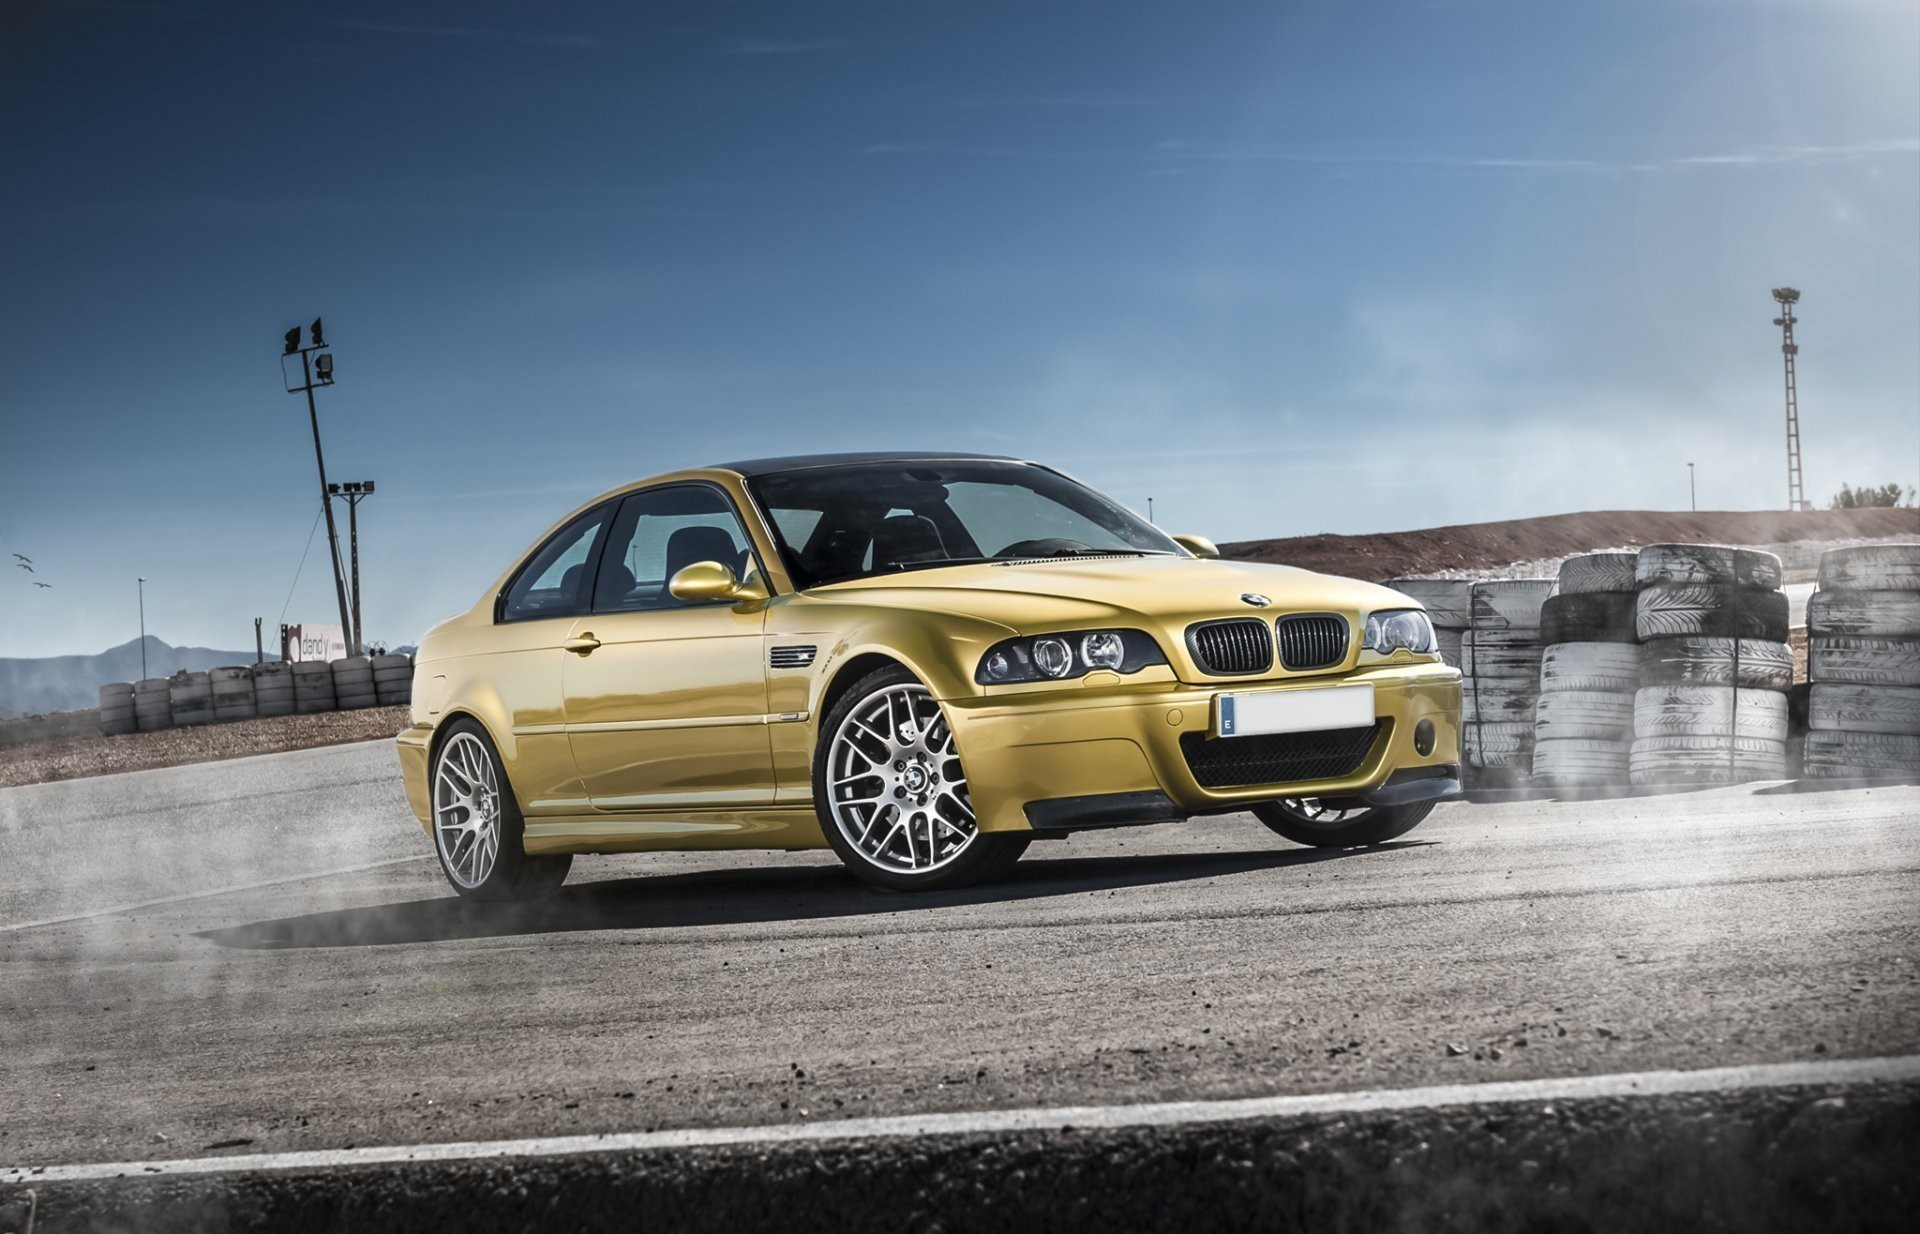 1920x1234 Bmw E46 M3 Gold Hd Wallpaper